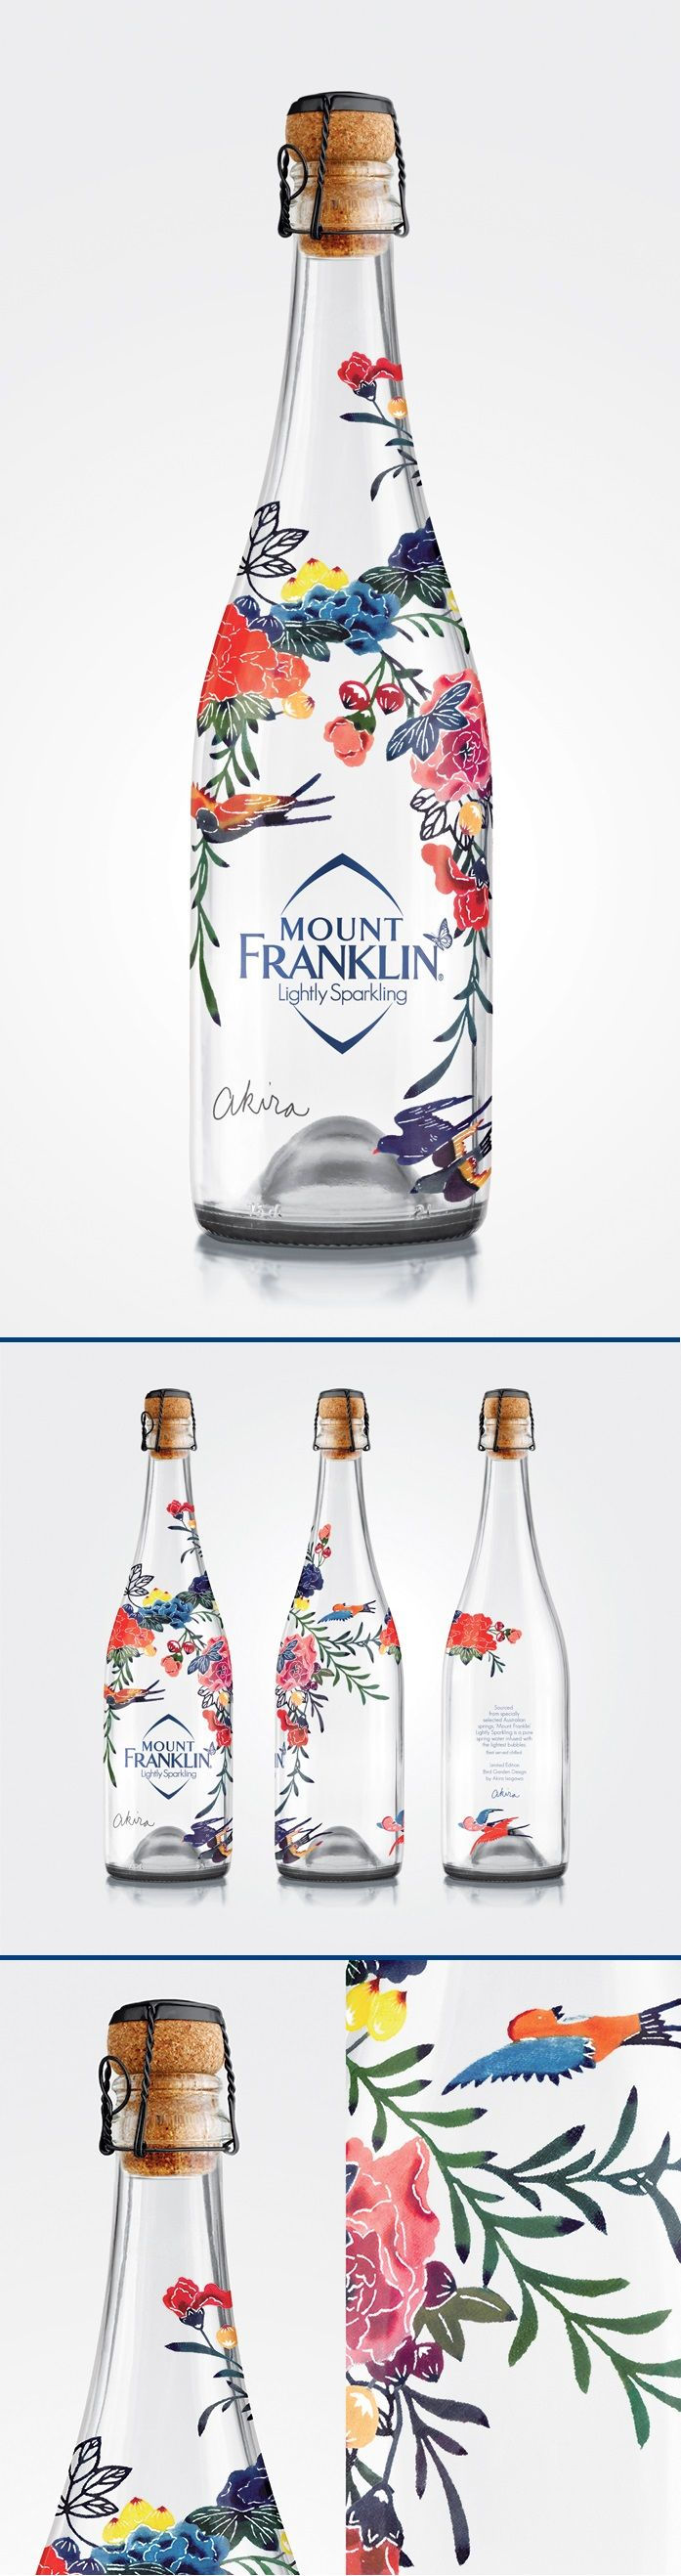 Mount Franklin Lightly Sparkling is a limited edition Bird Garden Design by Akira Isogawa